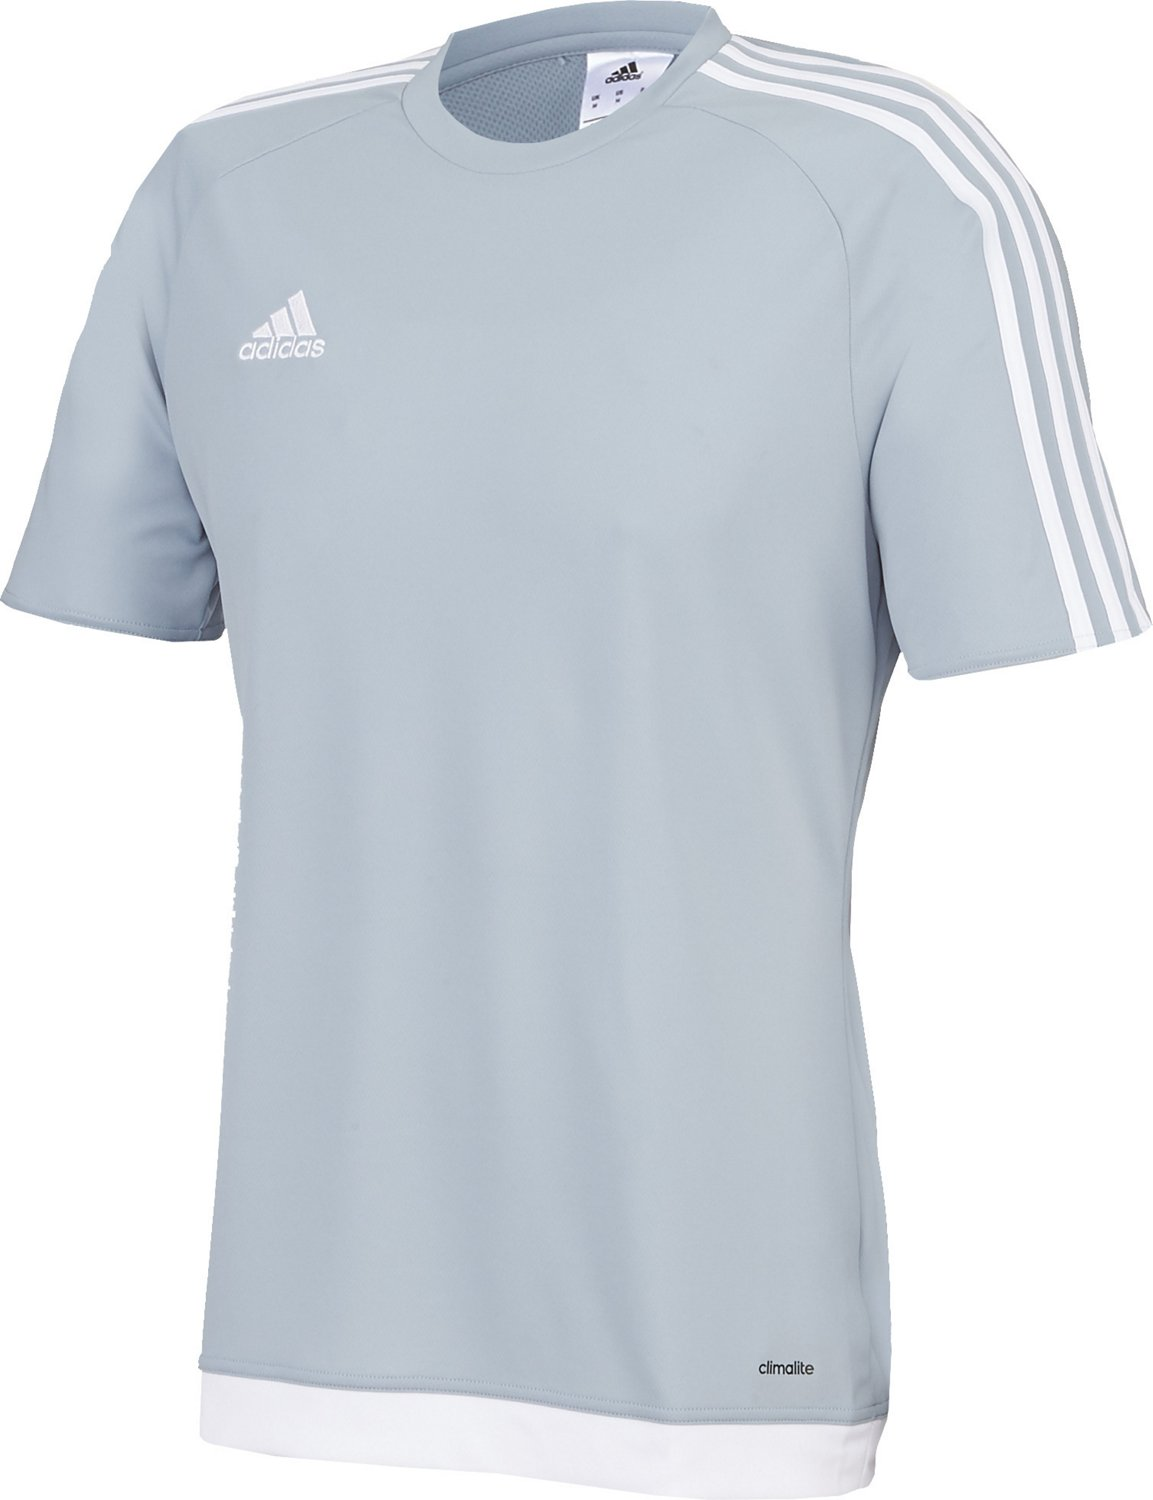 f87291cad Display product reviews for adidas Men s Estro 15 Soccer Jersey